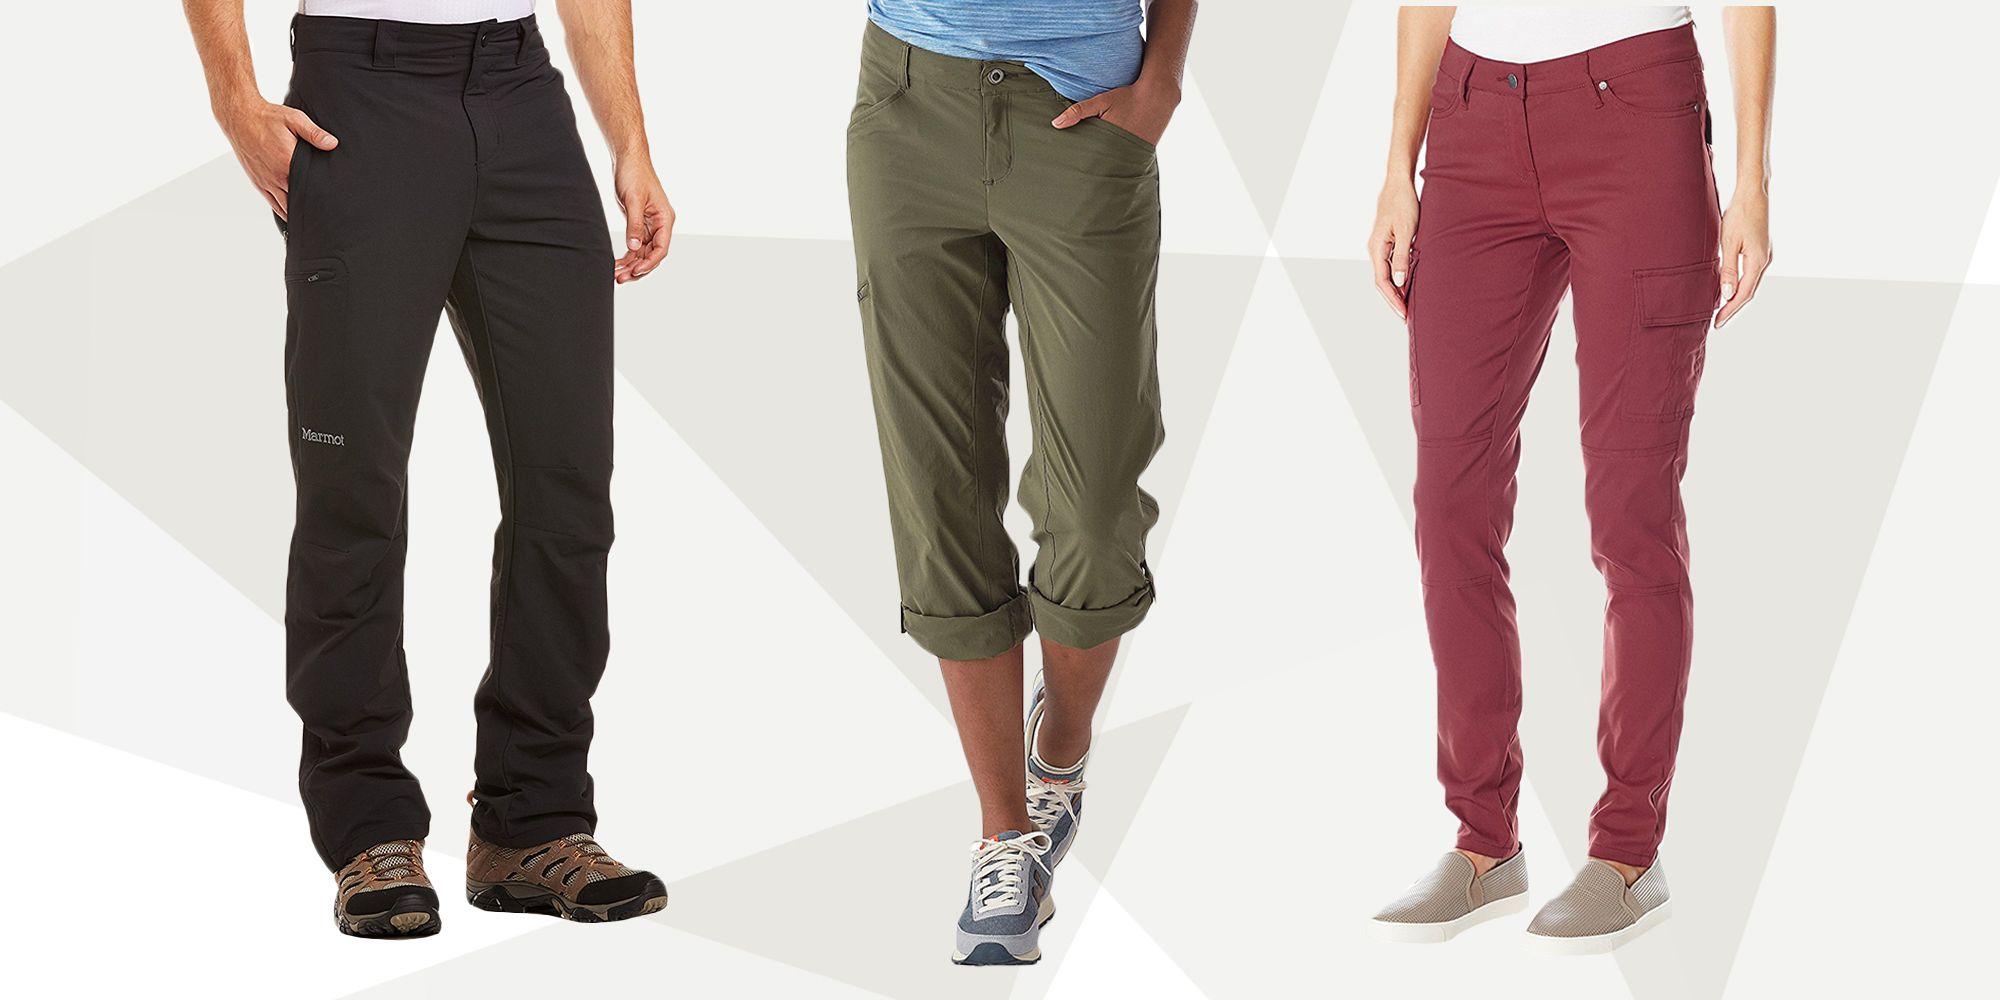 1c5be29238aee 11 Best Hiking Pants for 2018 - Versatile Hiking Pants for Women and Men